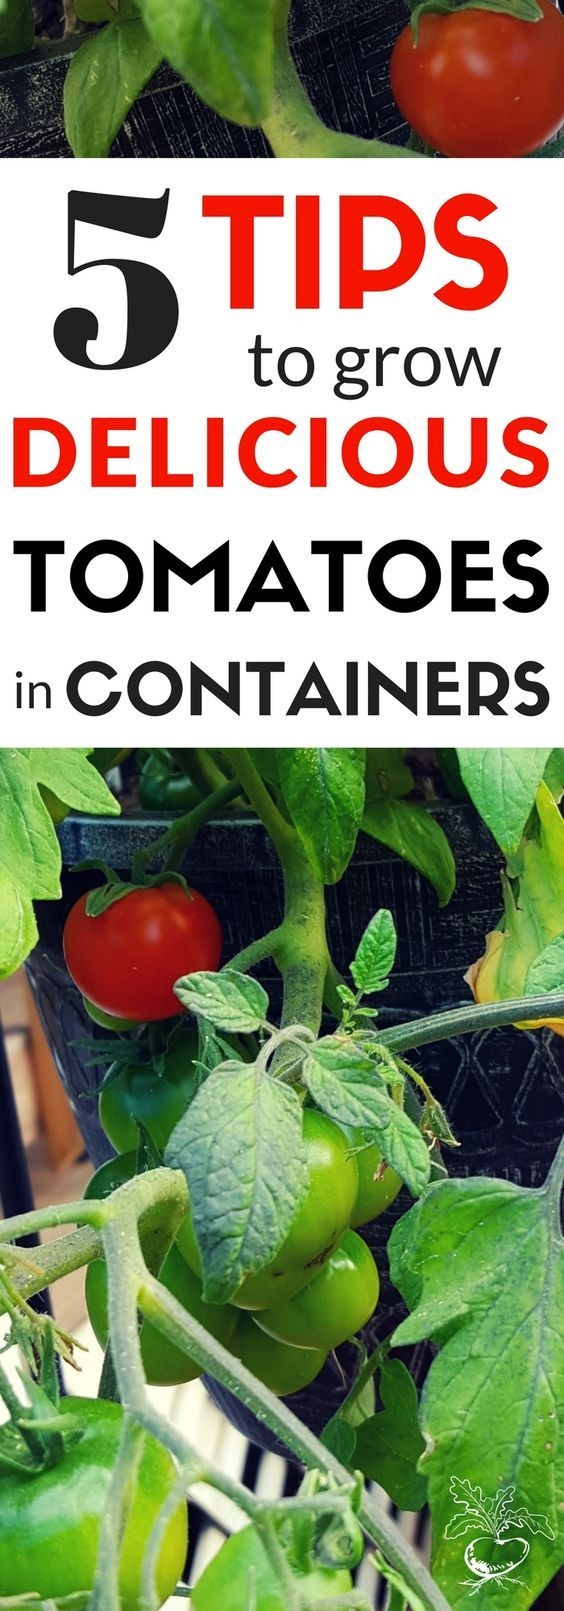 5 Tips To Grow Delicious Tomatoes In Containers 400 x 300